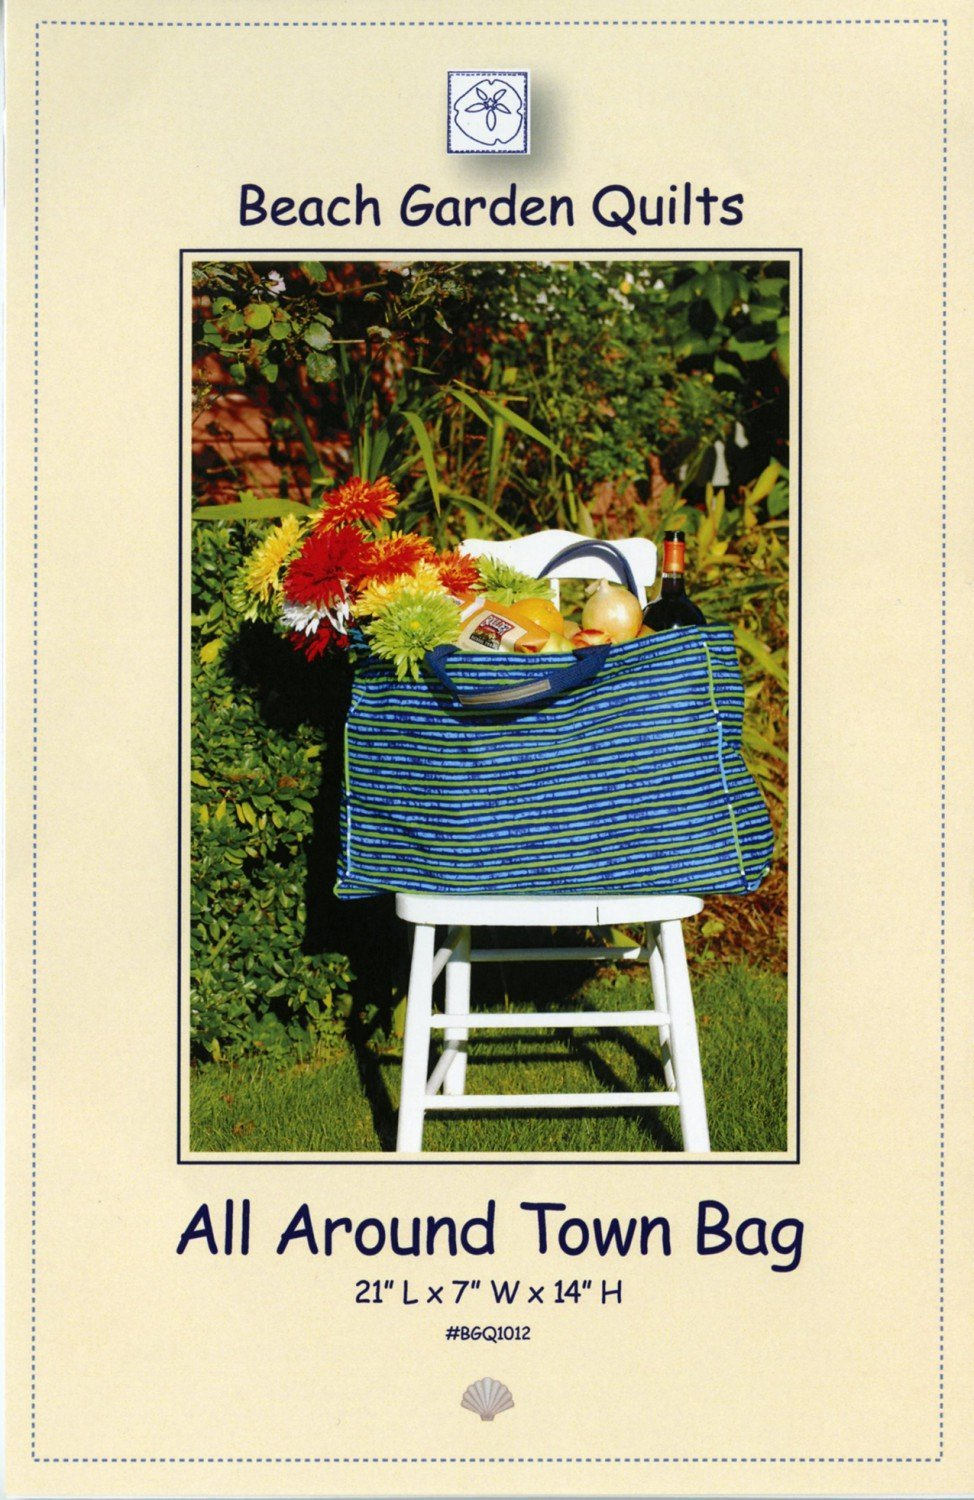 All Around Town Bag